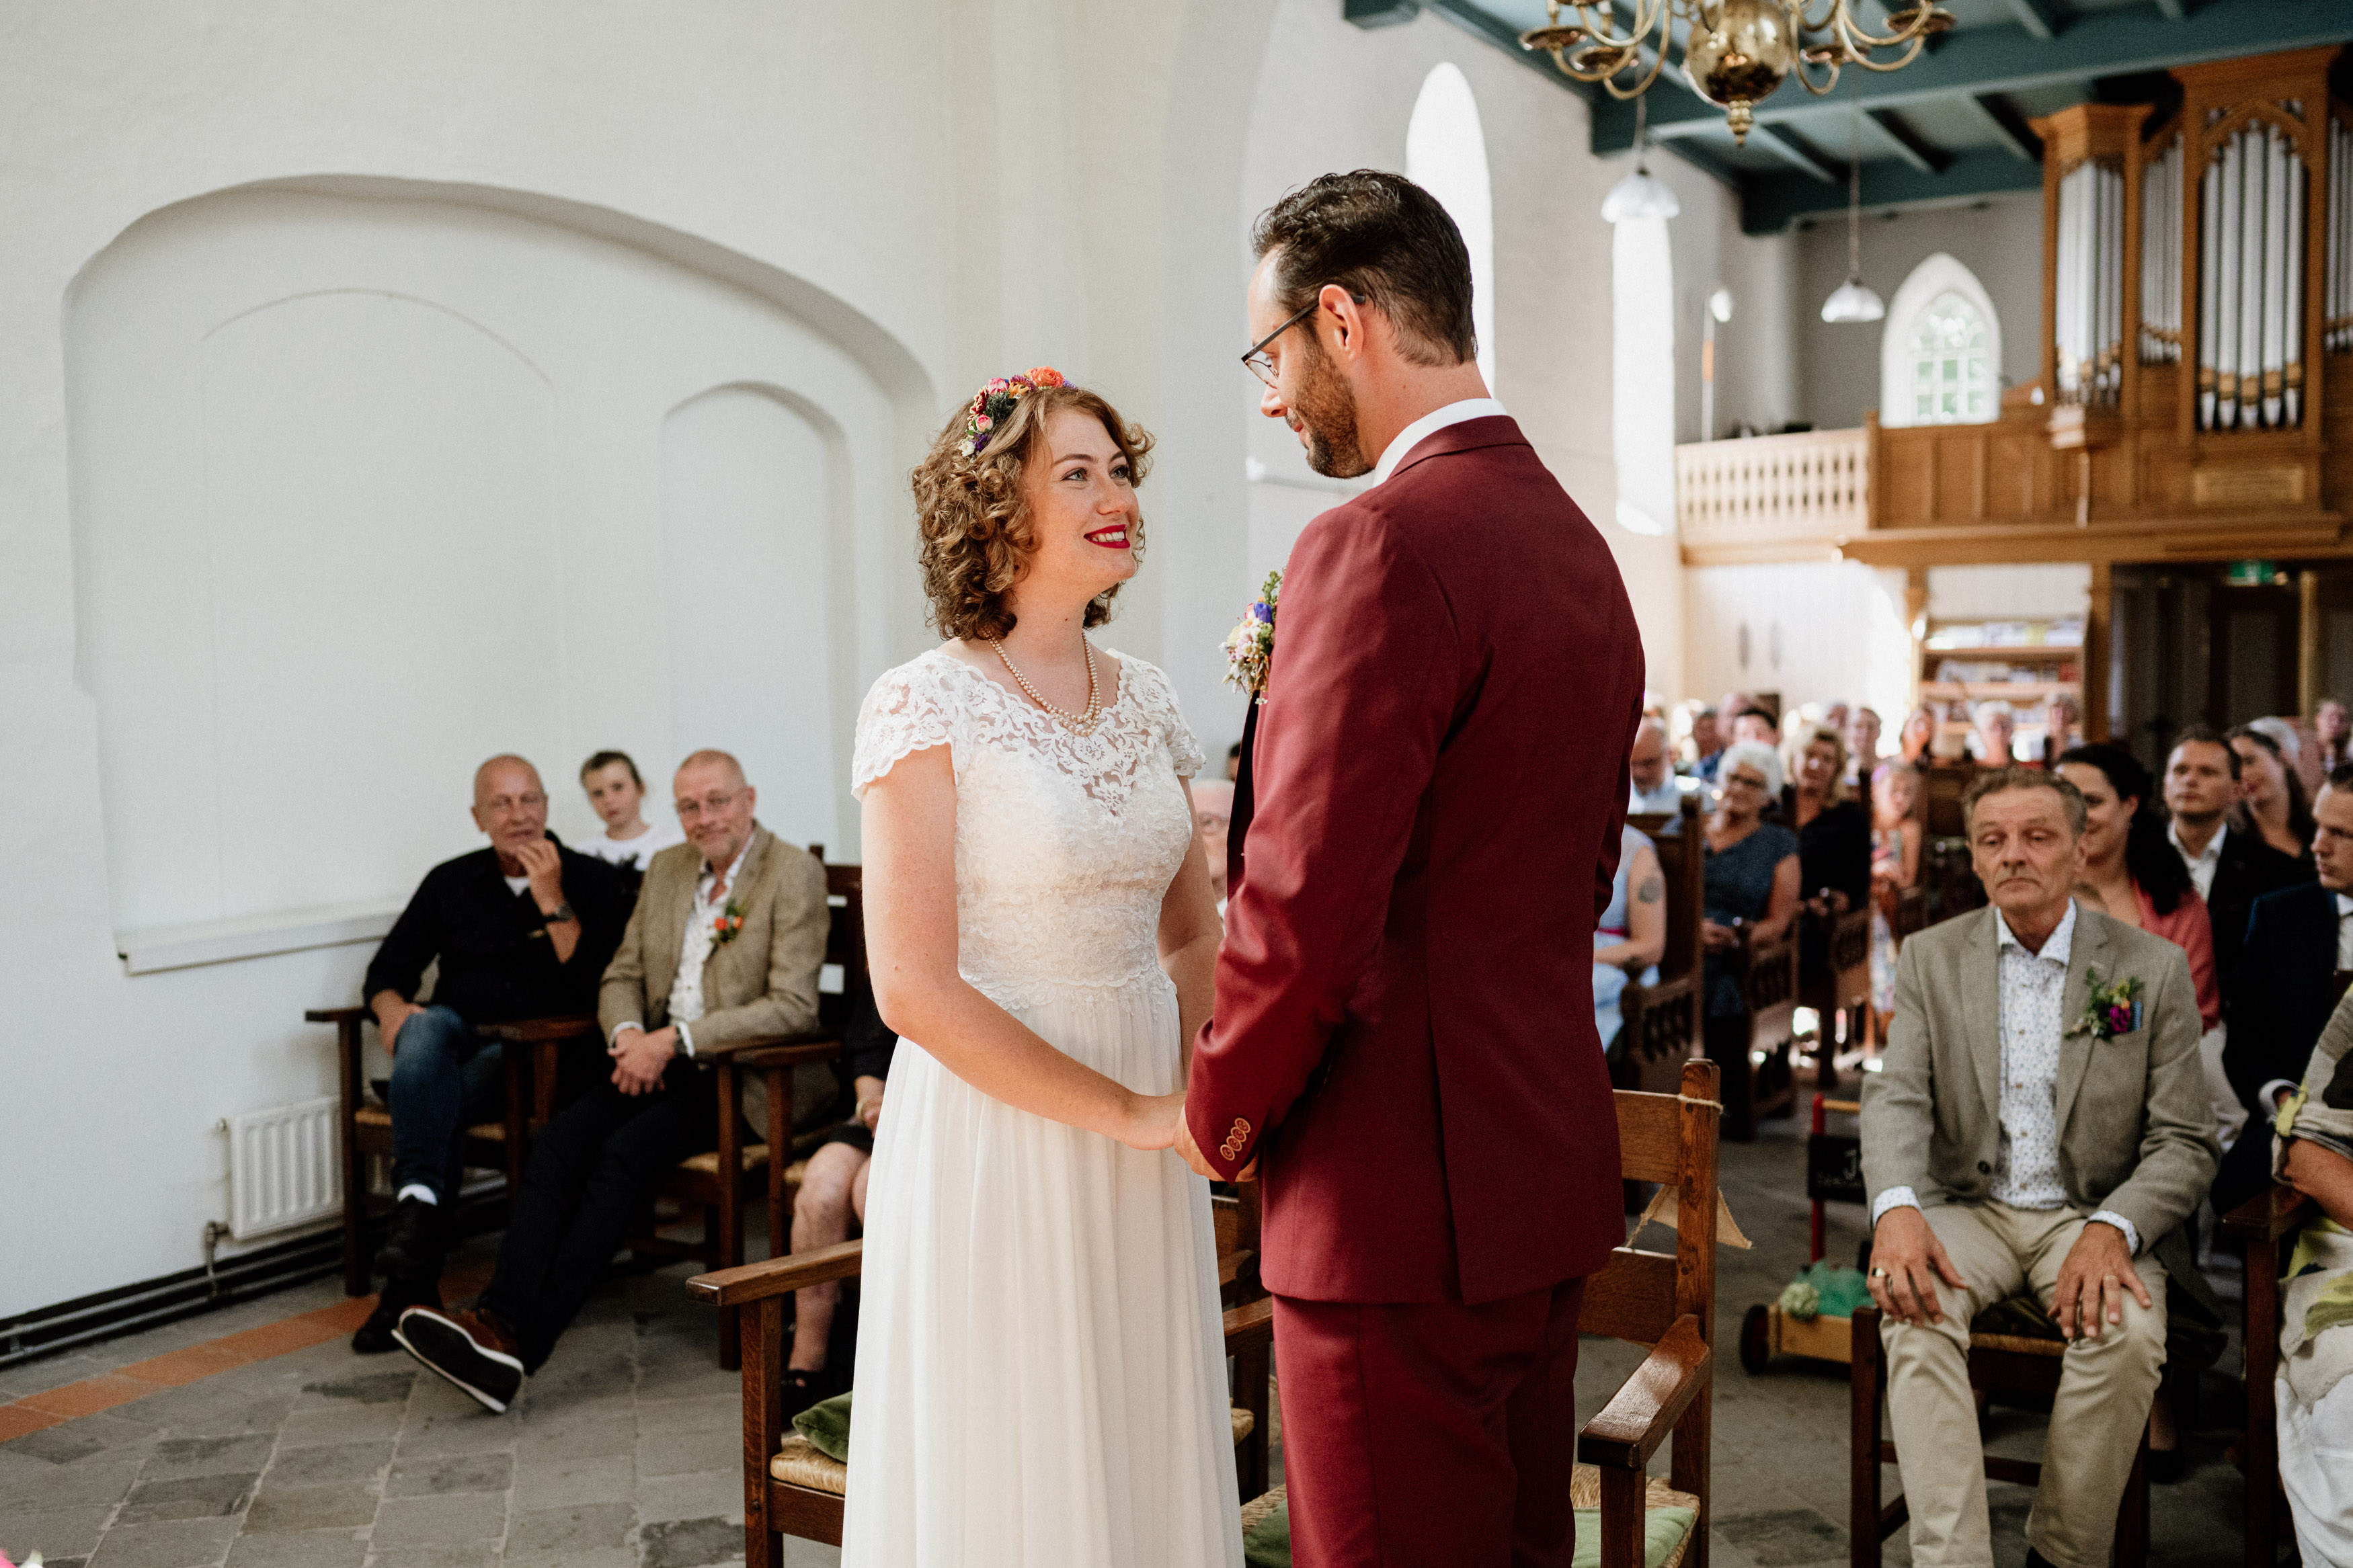 wedding couple in church in front of people